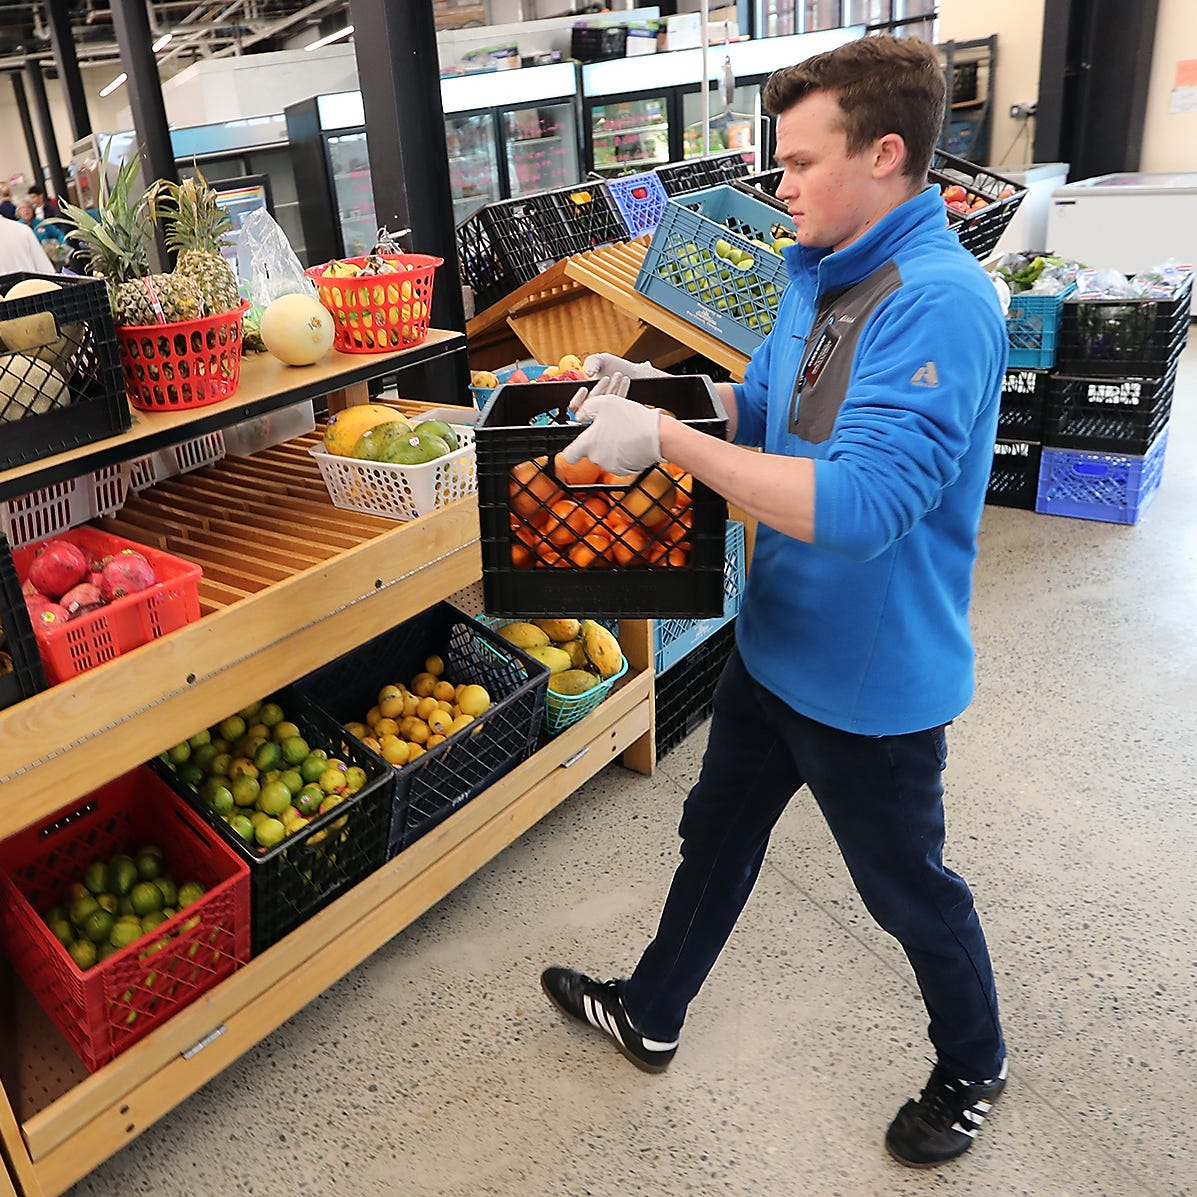 New Fishline food bank, services center opens in Poulsbo